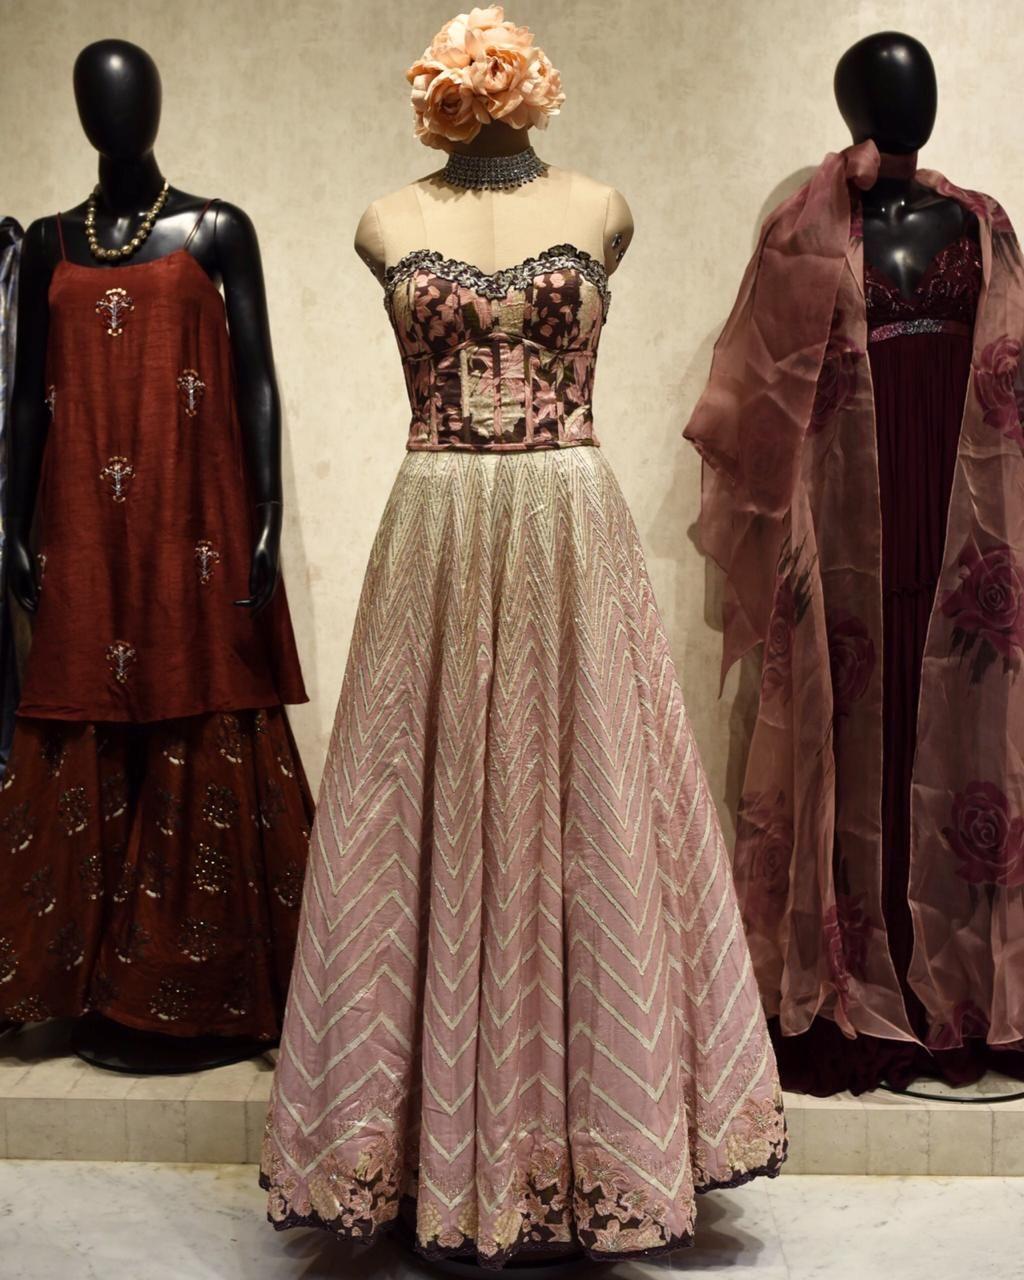 The Lakme Fashion Week S Collection At Pernia S Pop Up Studio Lakme Fashion Week Clothes For Women Fashion